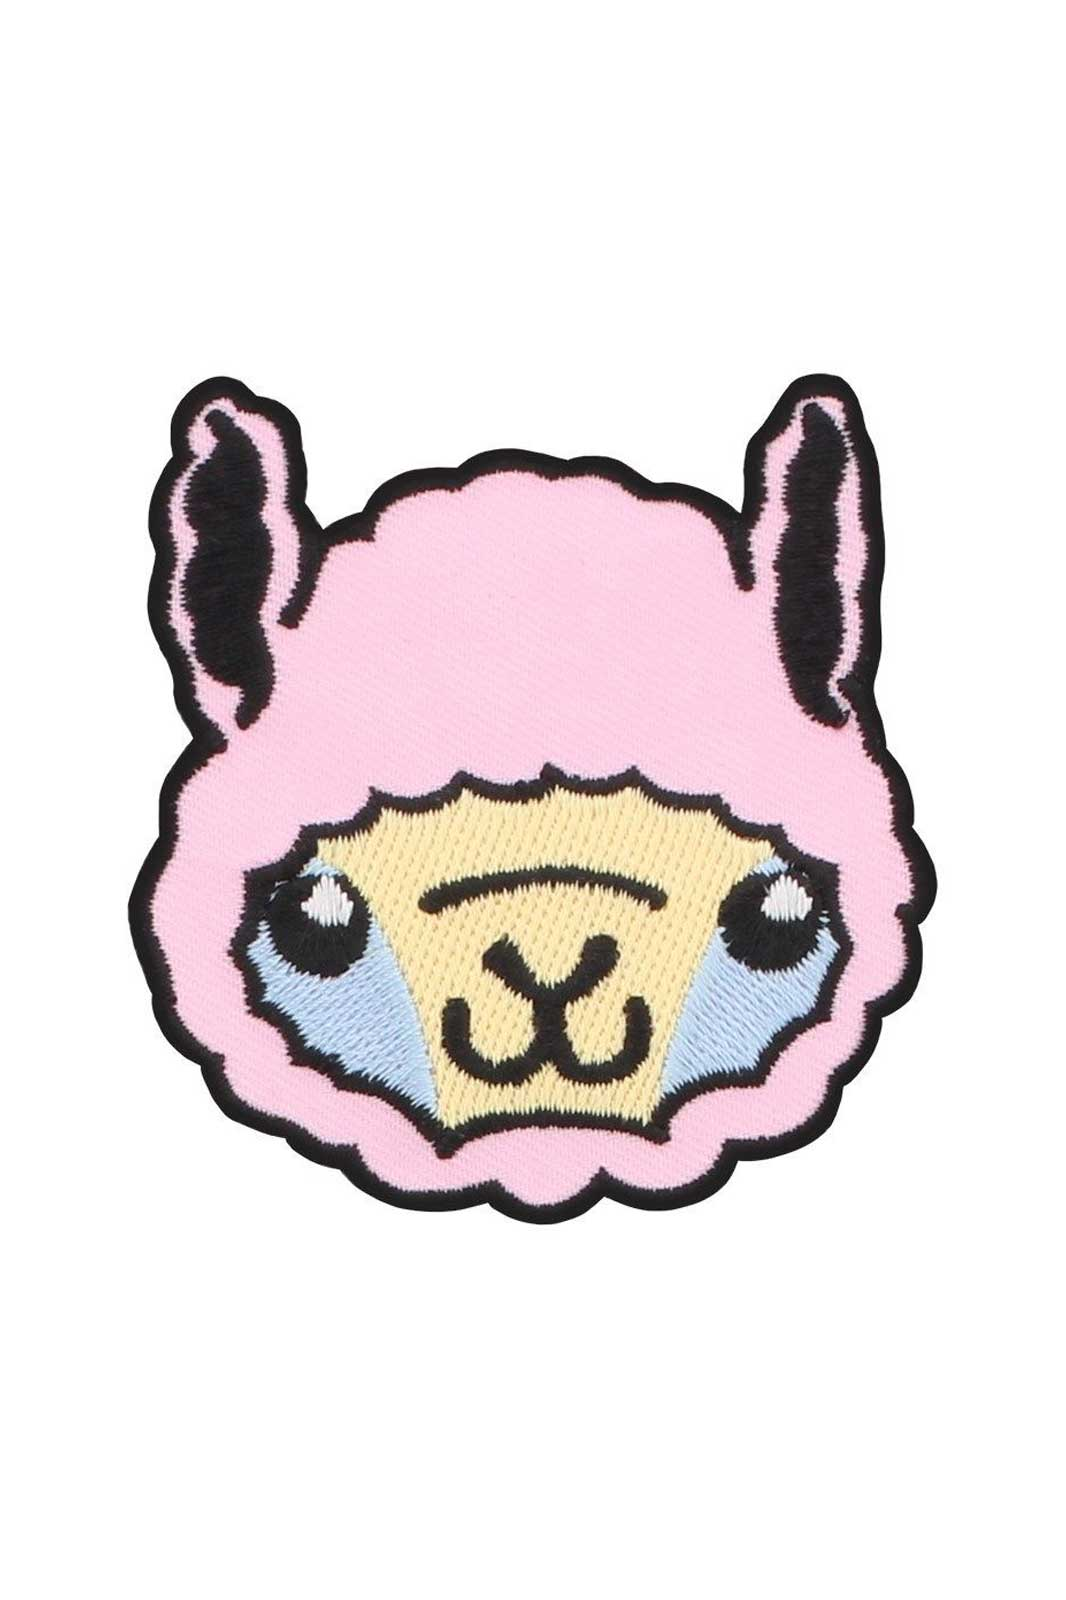 Kawaii Alpaca patch